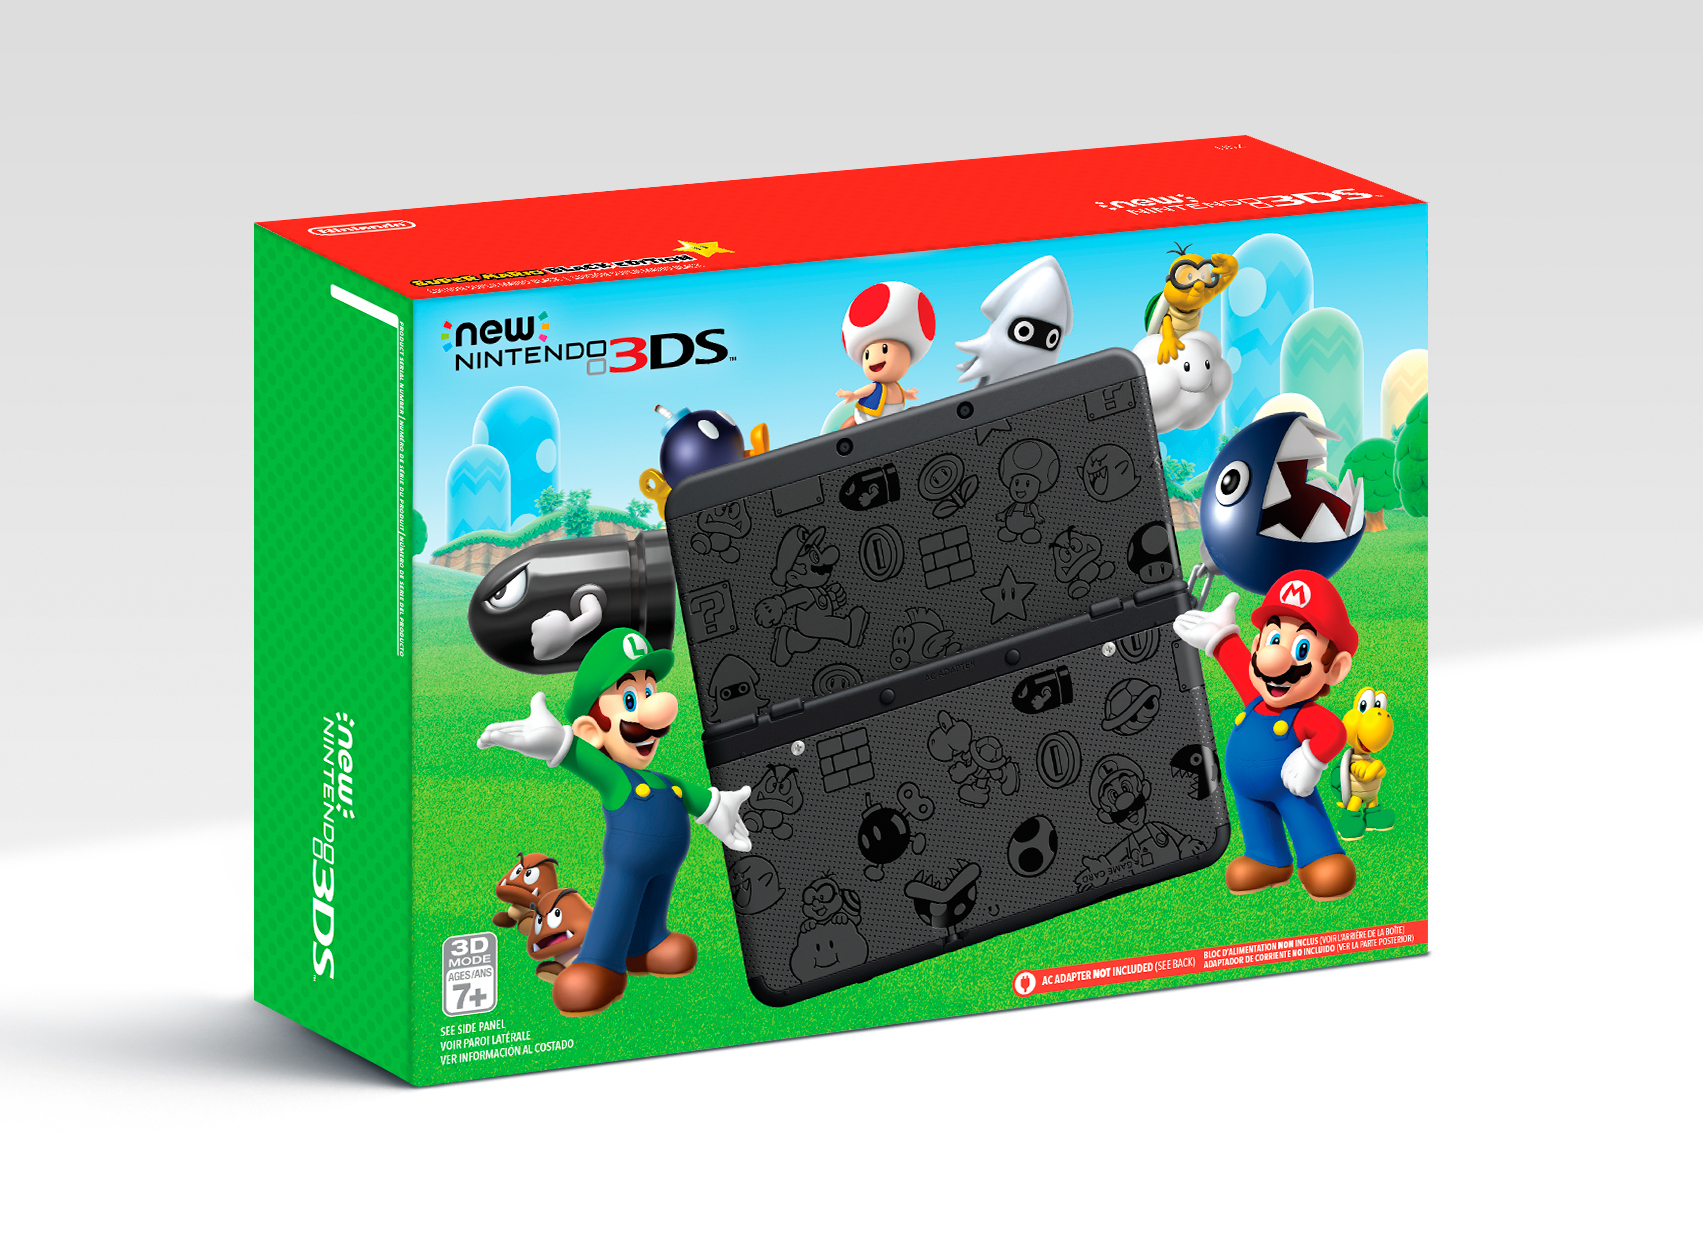 new nintendo 3ds system available for under 100 msrp for the new nintendo 3ds system available for under 100 msrp for the first time on black friday business wire